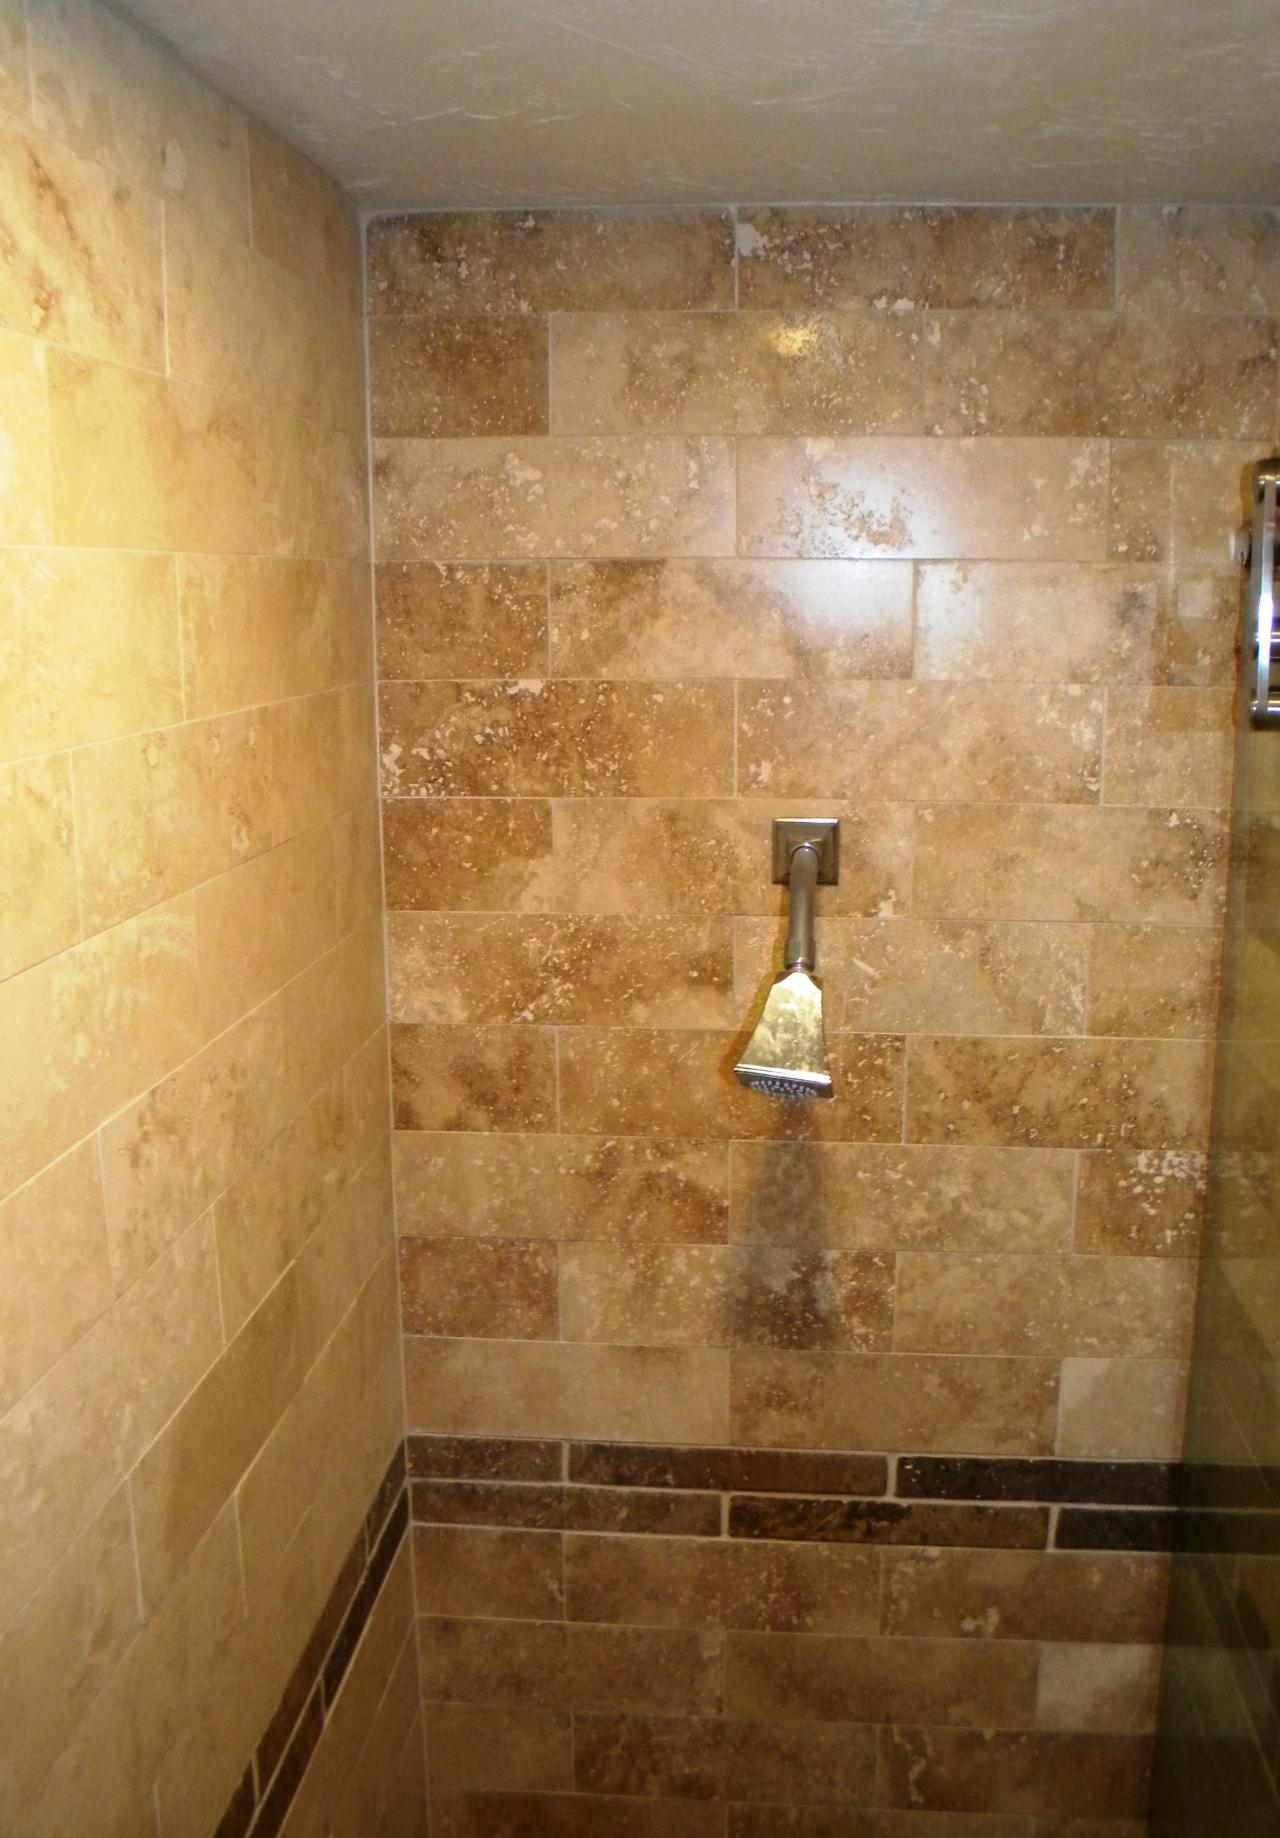 Tile work in bathrooms - Custom Bathrooms